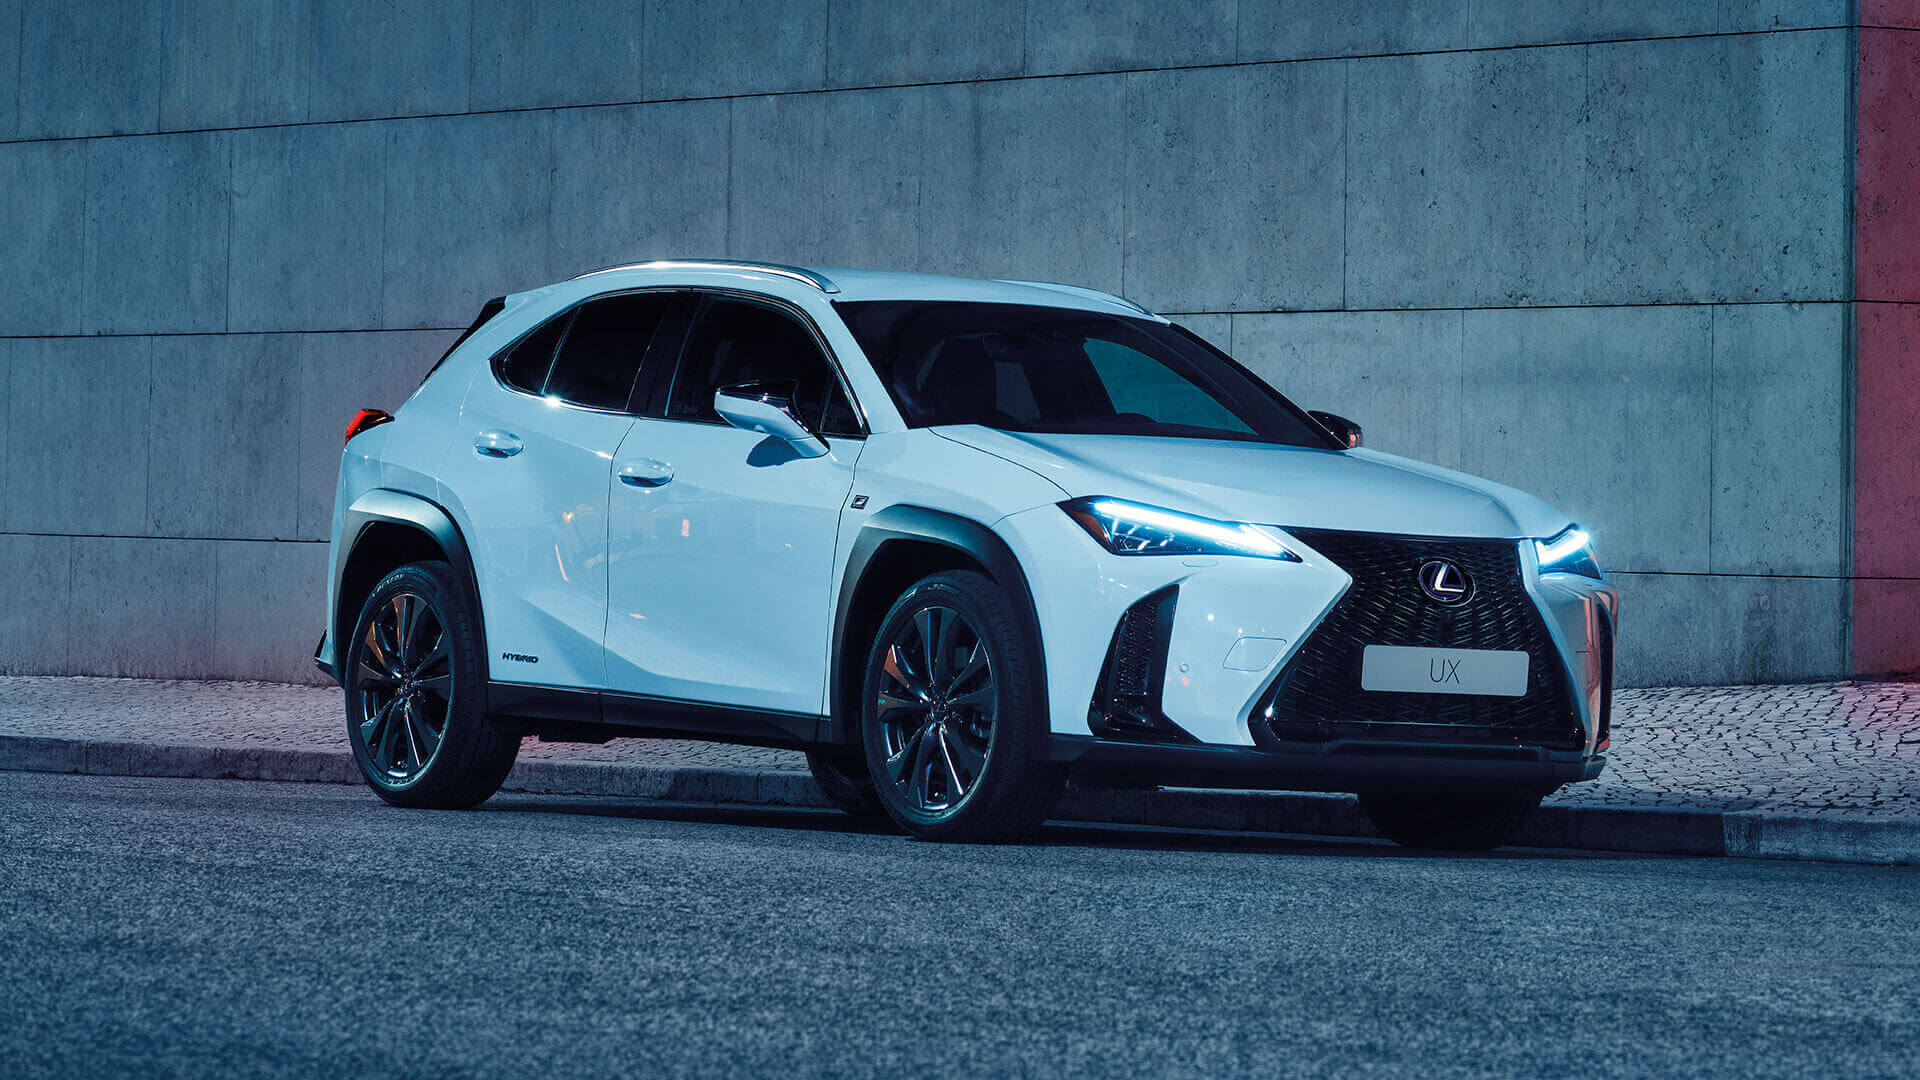 2019 lexus uk ux gallery exterior 04